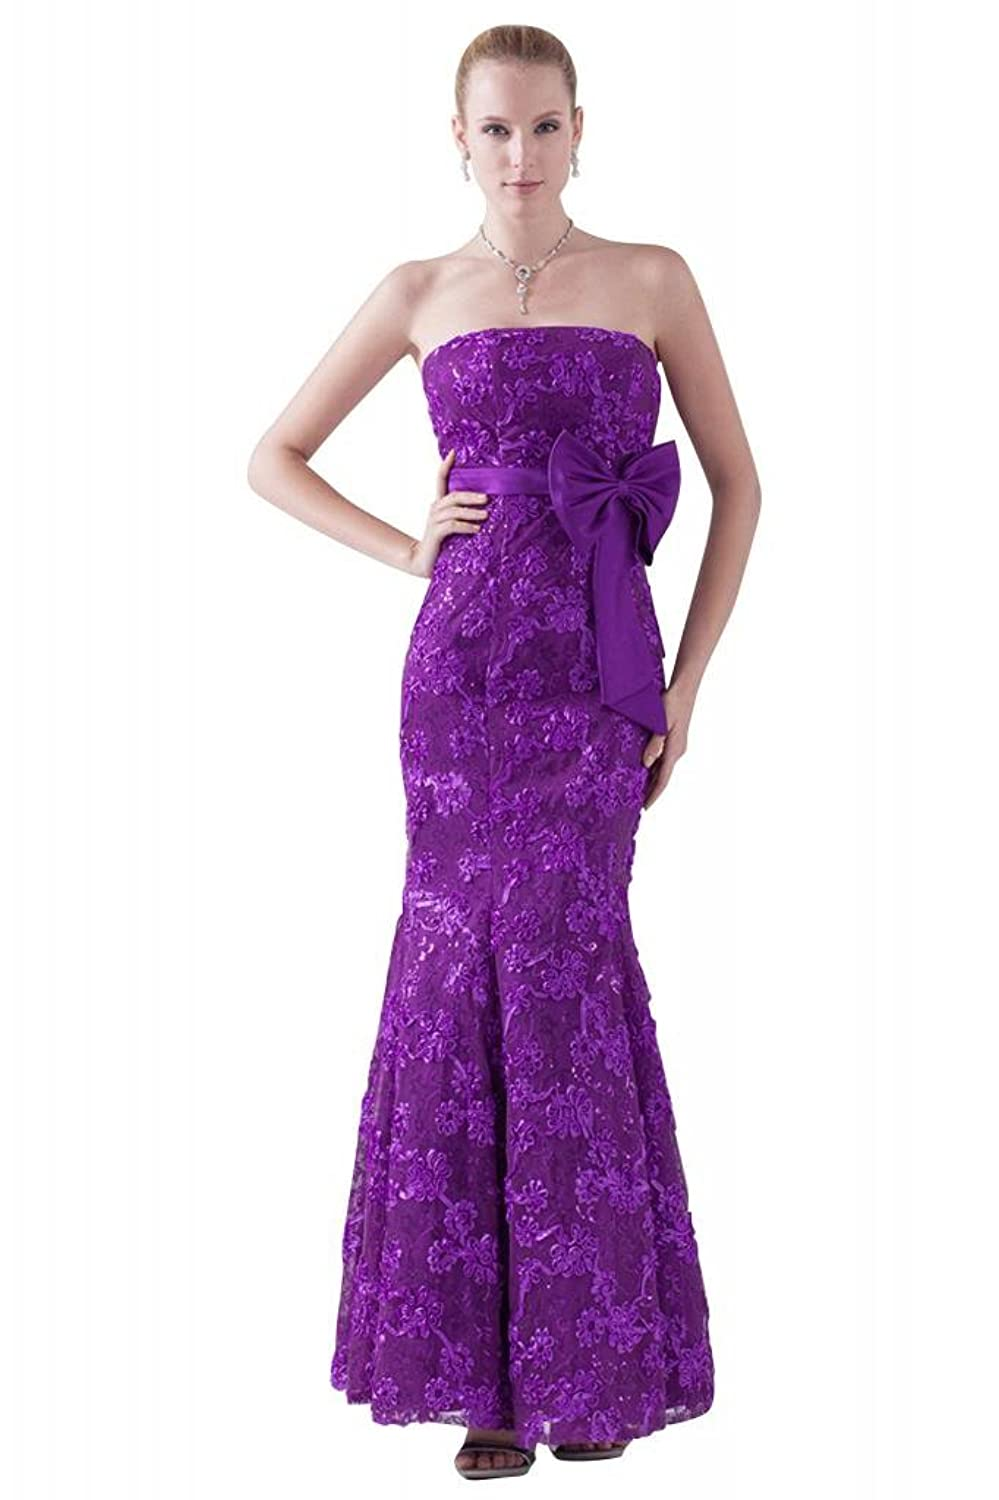 GEORGE BRIDE New Arrivals Strapless Beaded Mermaid with Bow Sash Dress